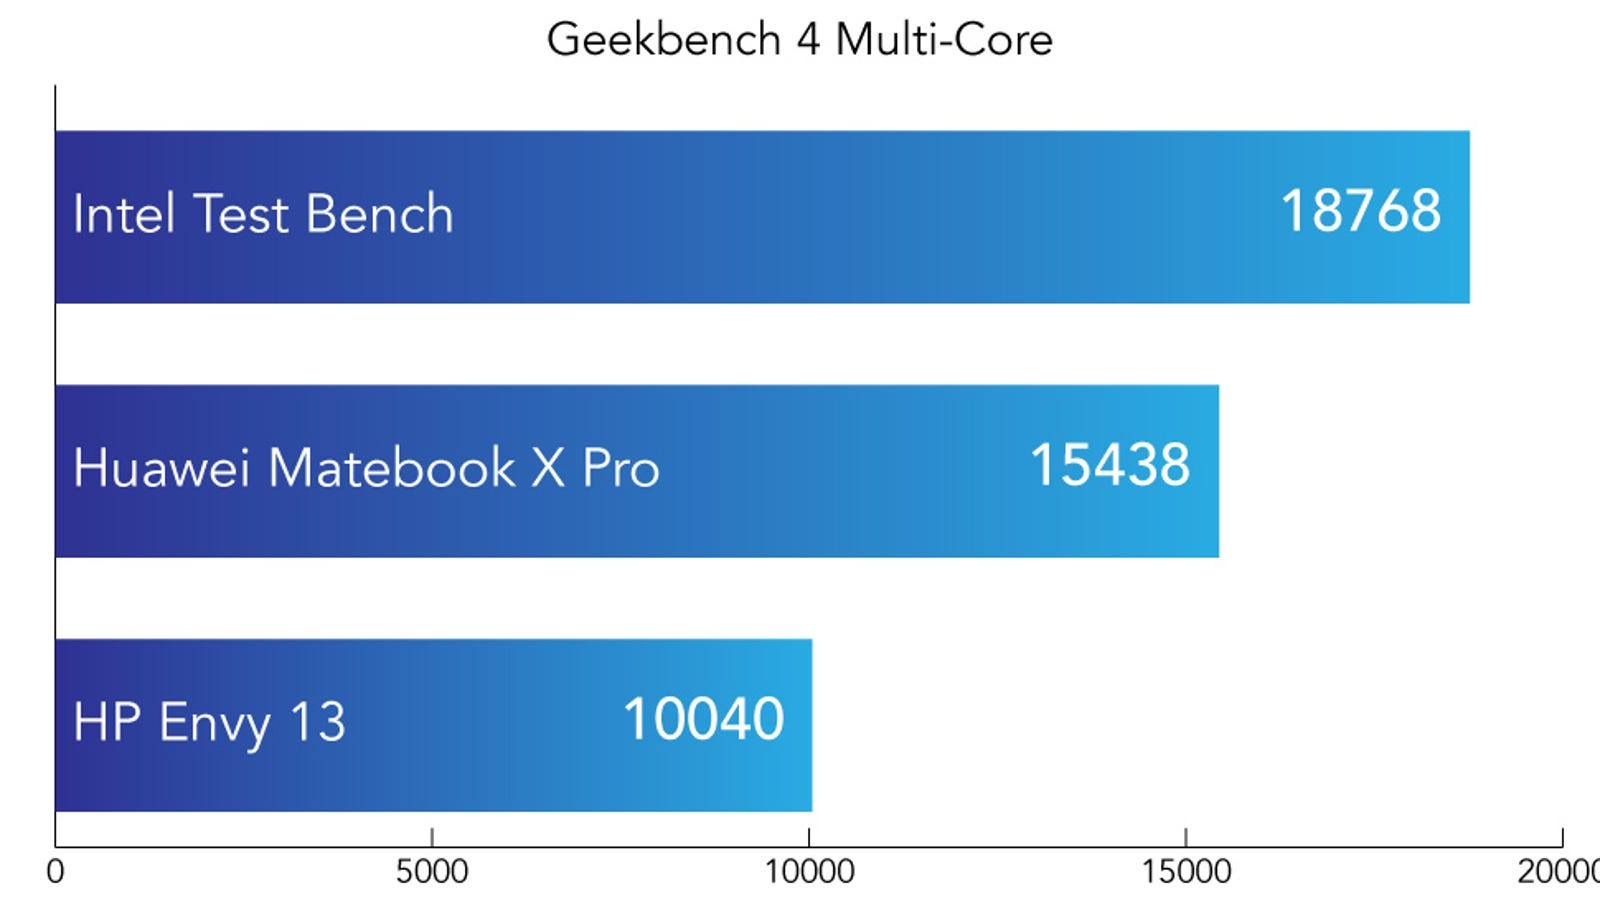 Geekbench 4 is a synthetic benchmark designed to test every component of the device. The Multi-core score focuses on the quality of multiple cores in the CPU working in tandem. Higher is better.